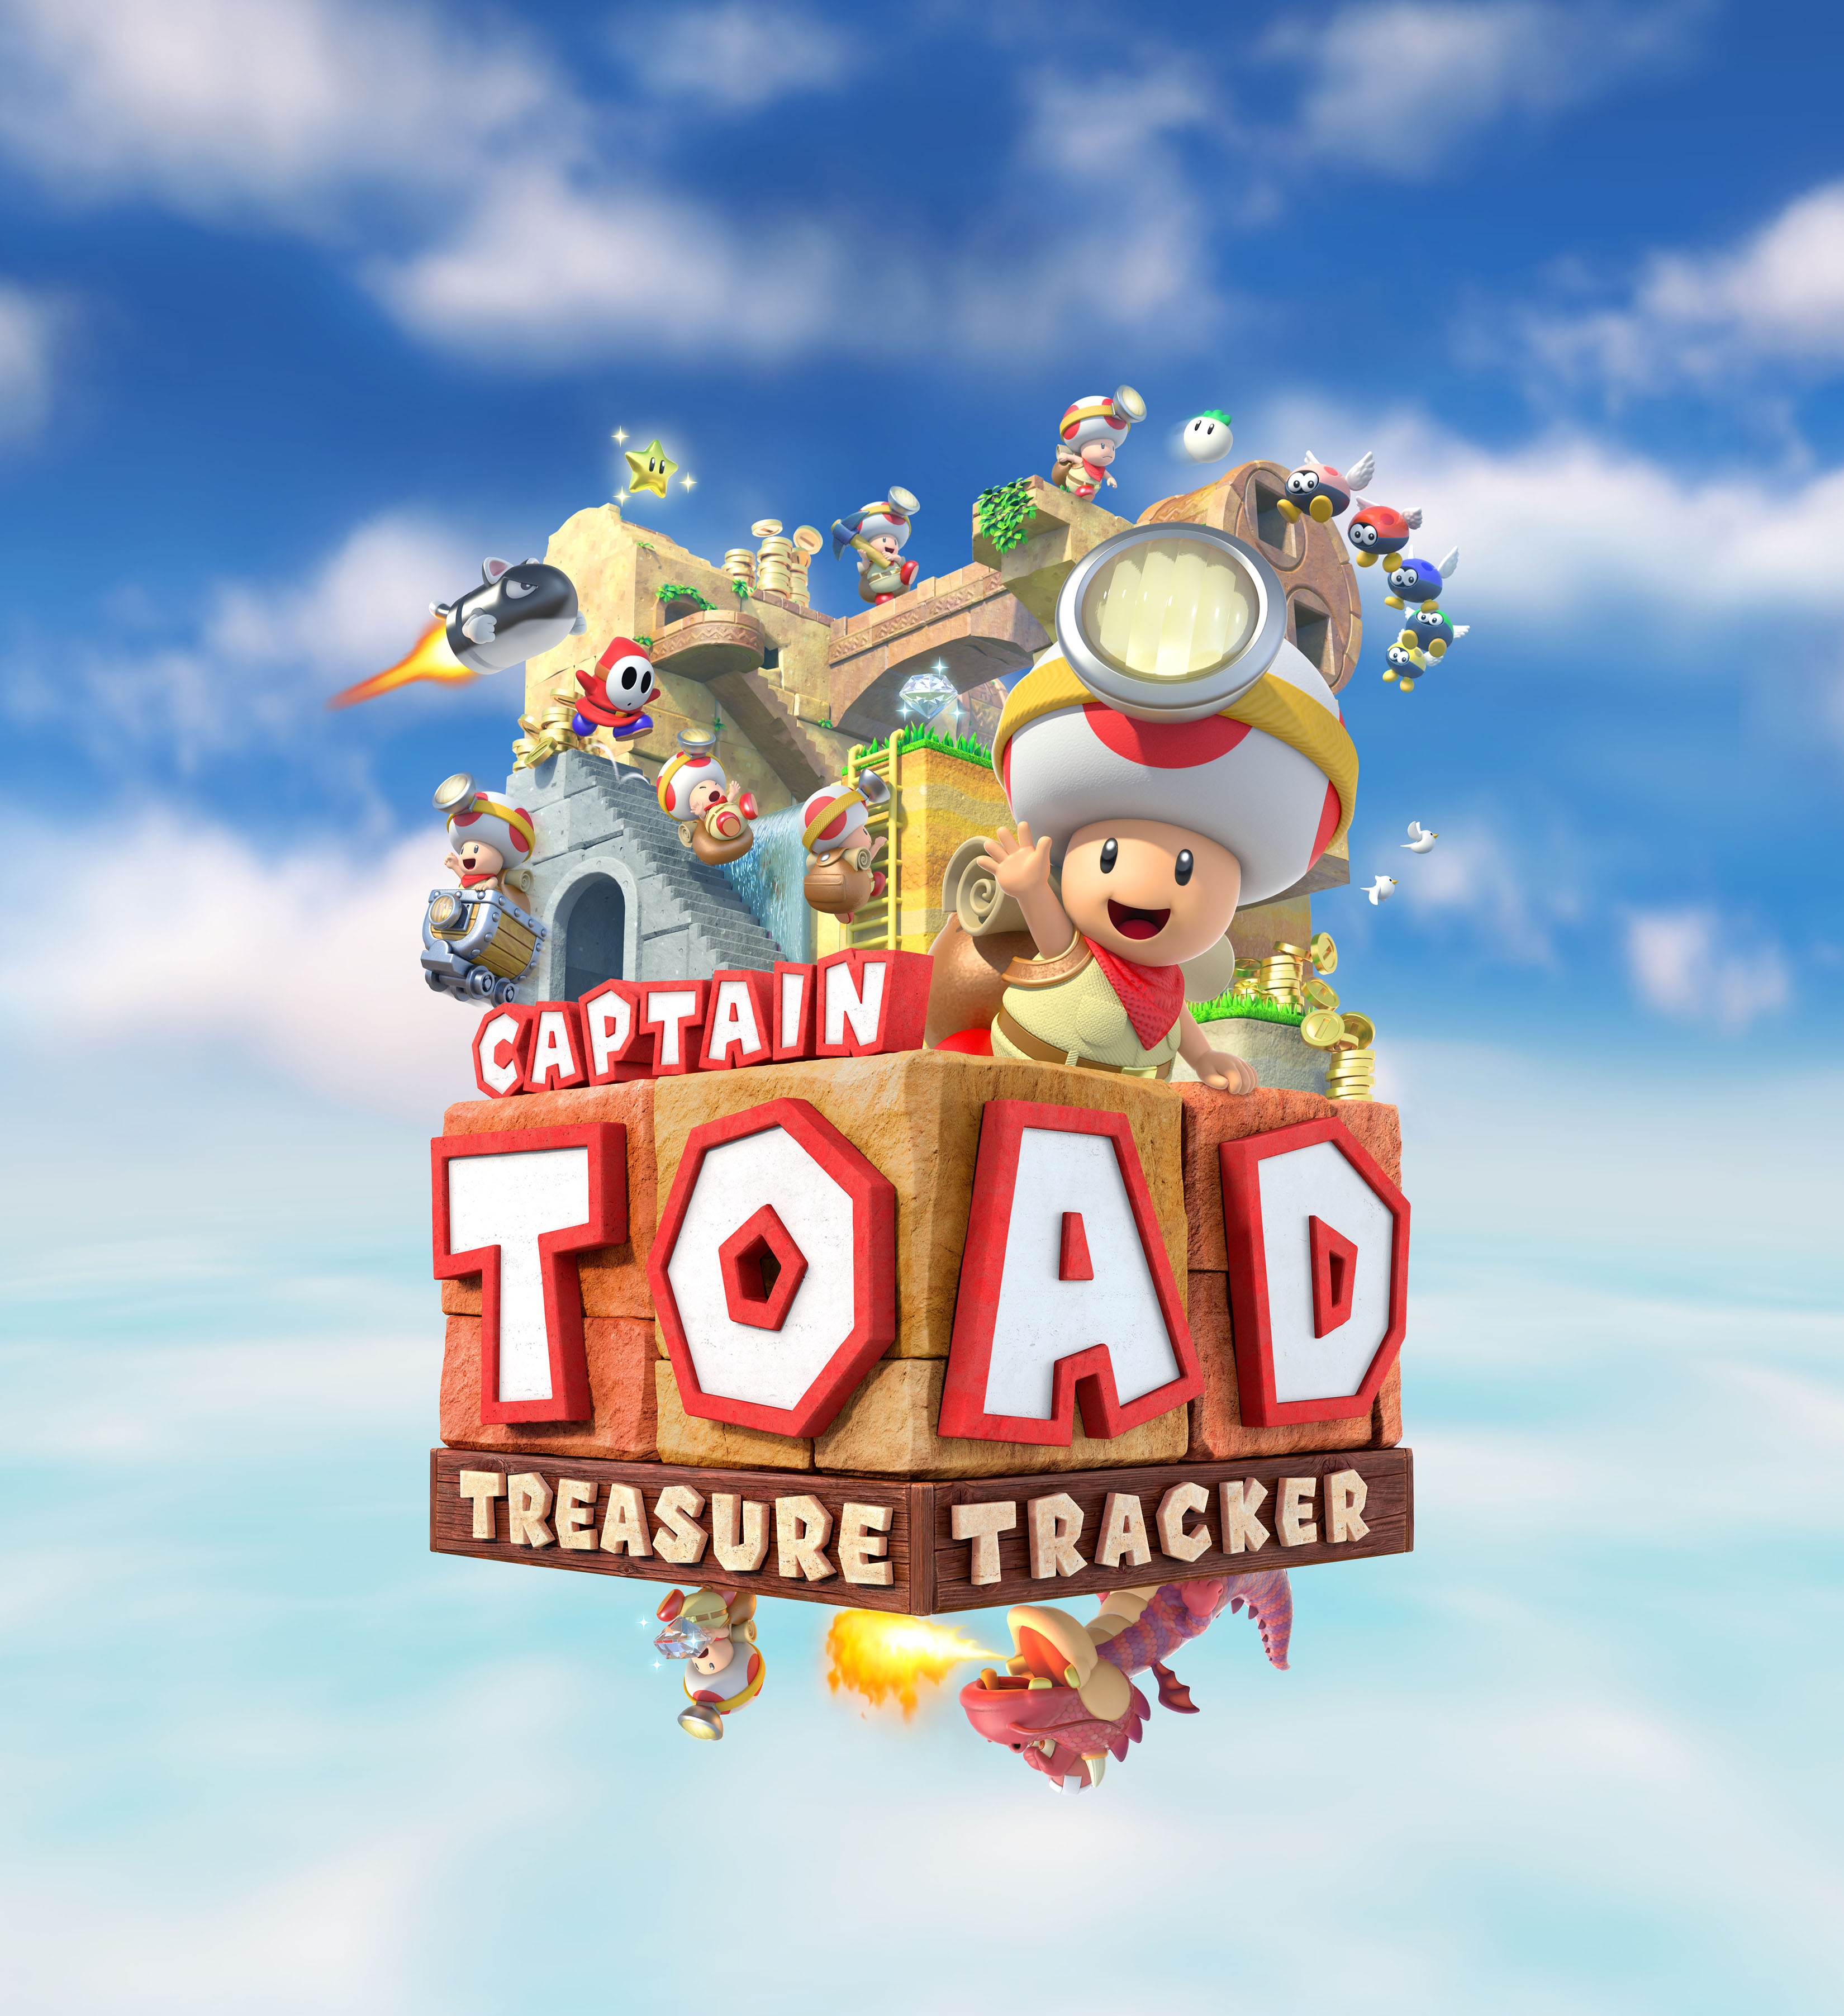 1402599035-captain-toad-treasure-tracker-key-art